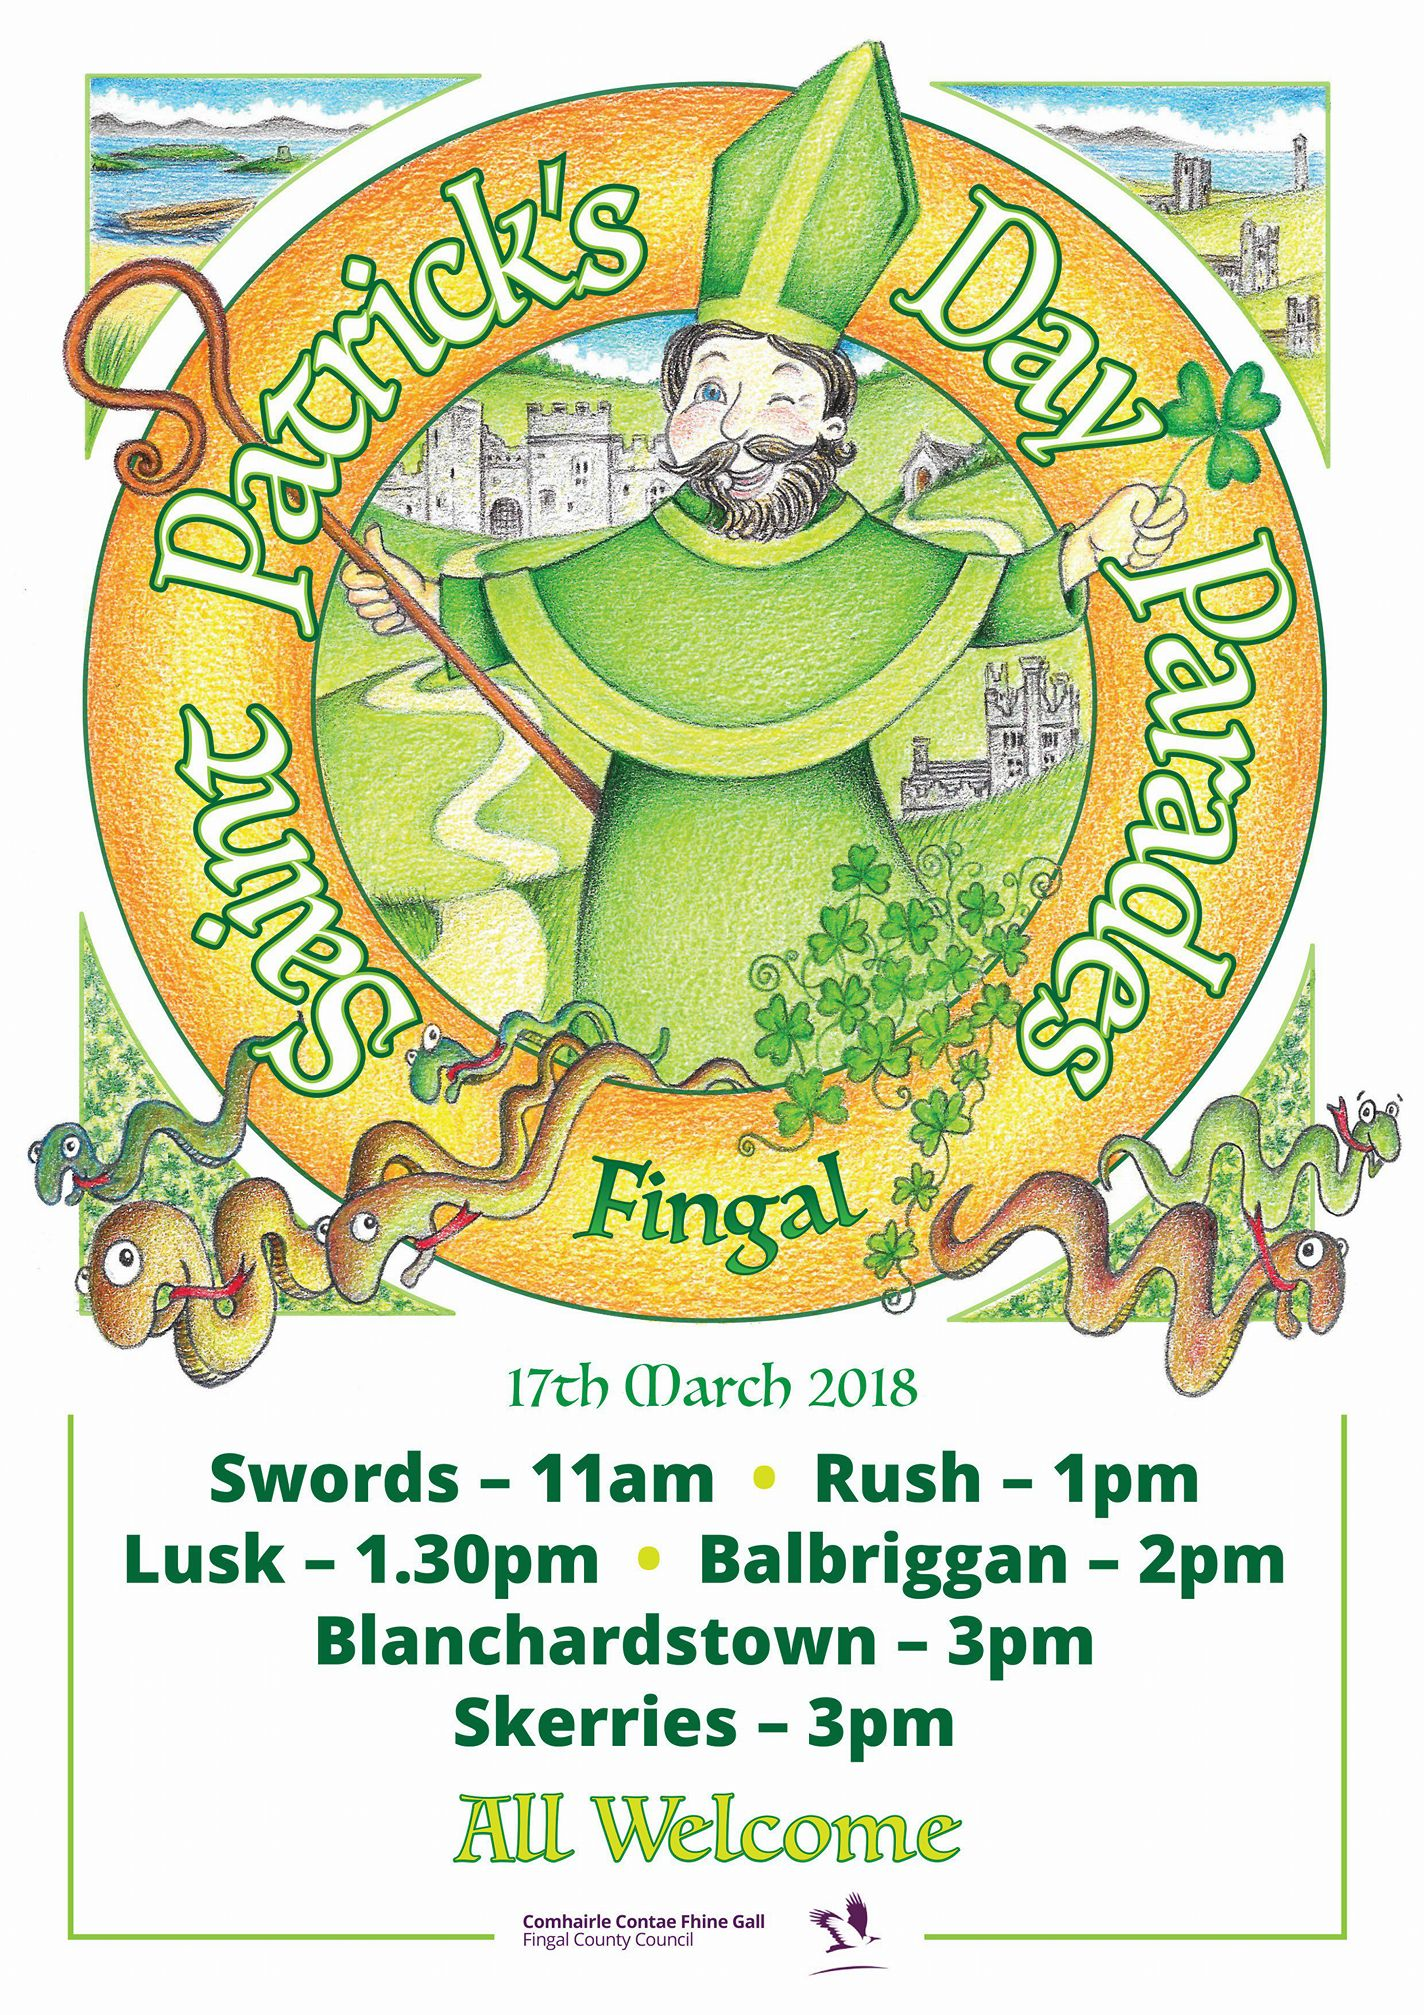 Paddys day paraades fingal